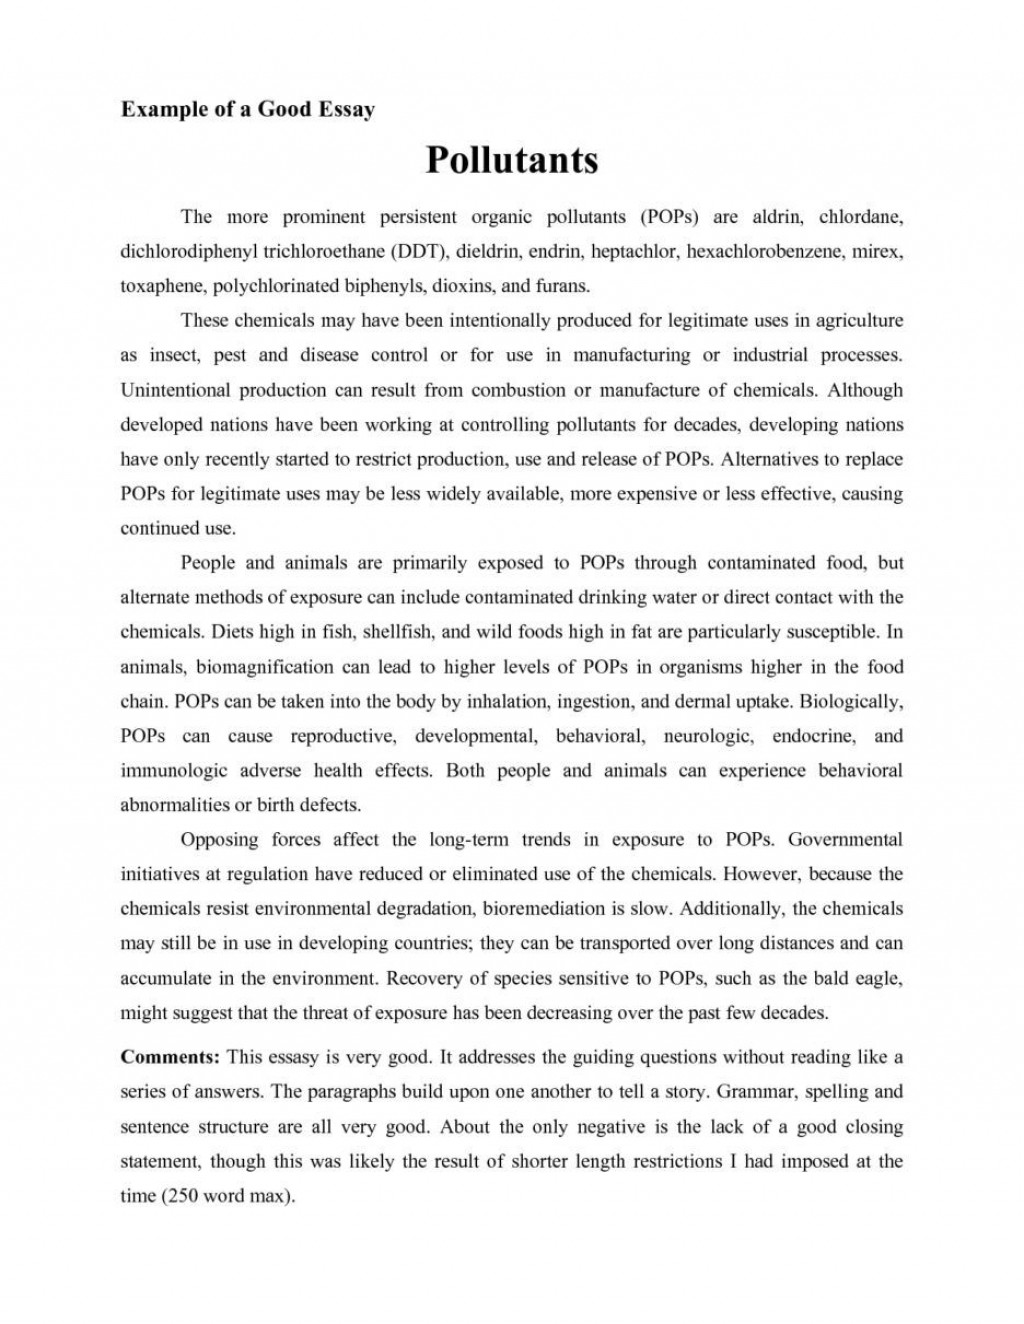 001 Essay Example Examples Of Good Imposing Essays For Middle School Argumentative Pdf College Scholarships Large